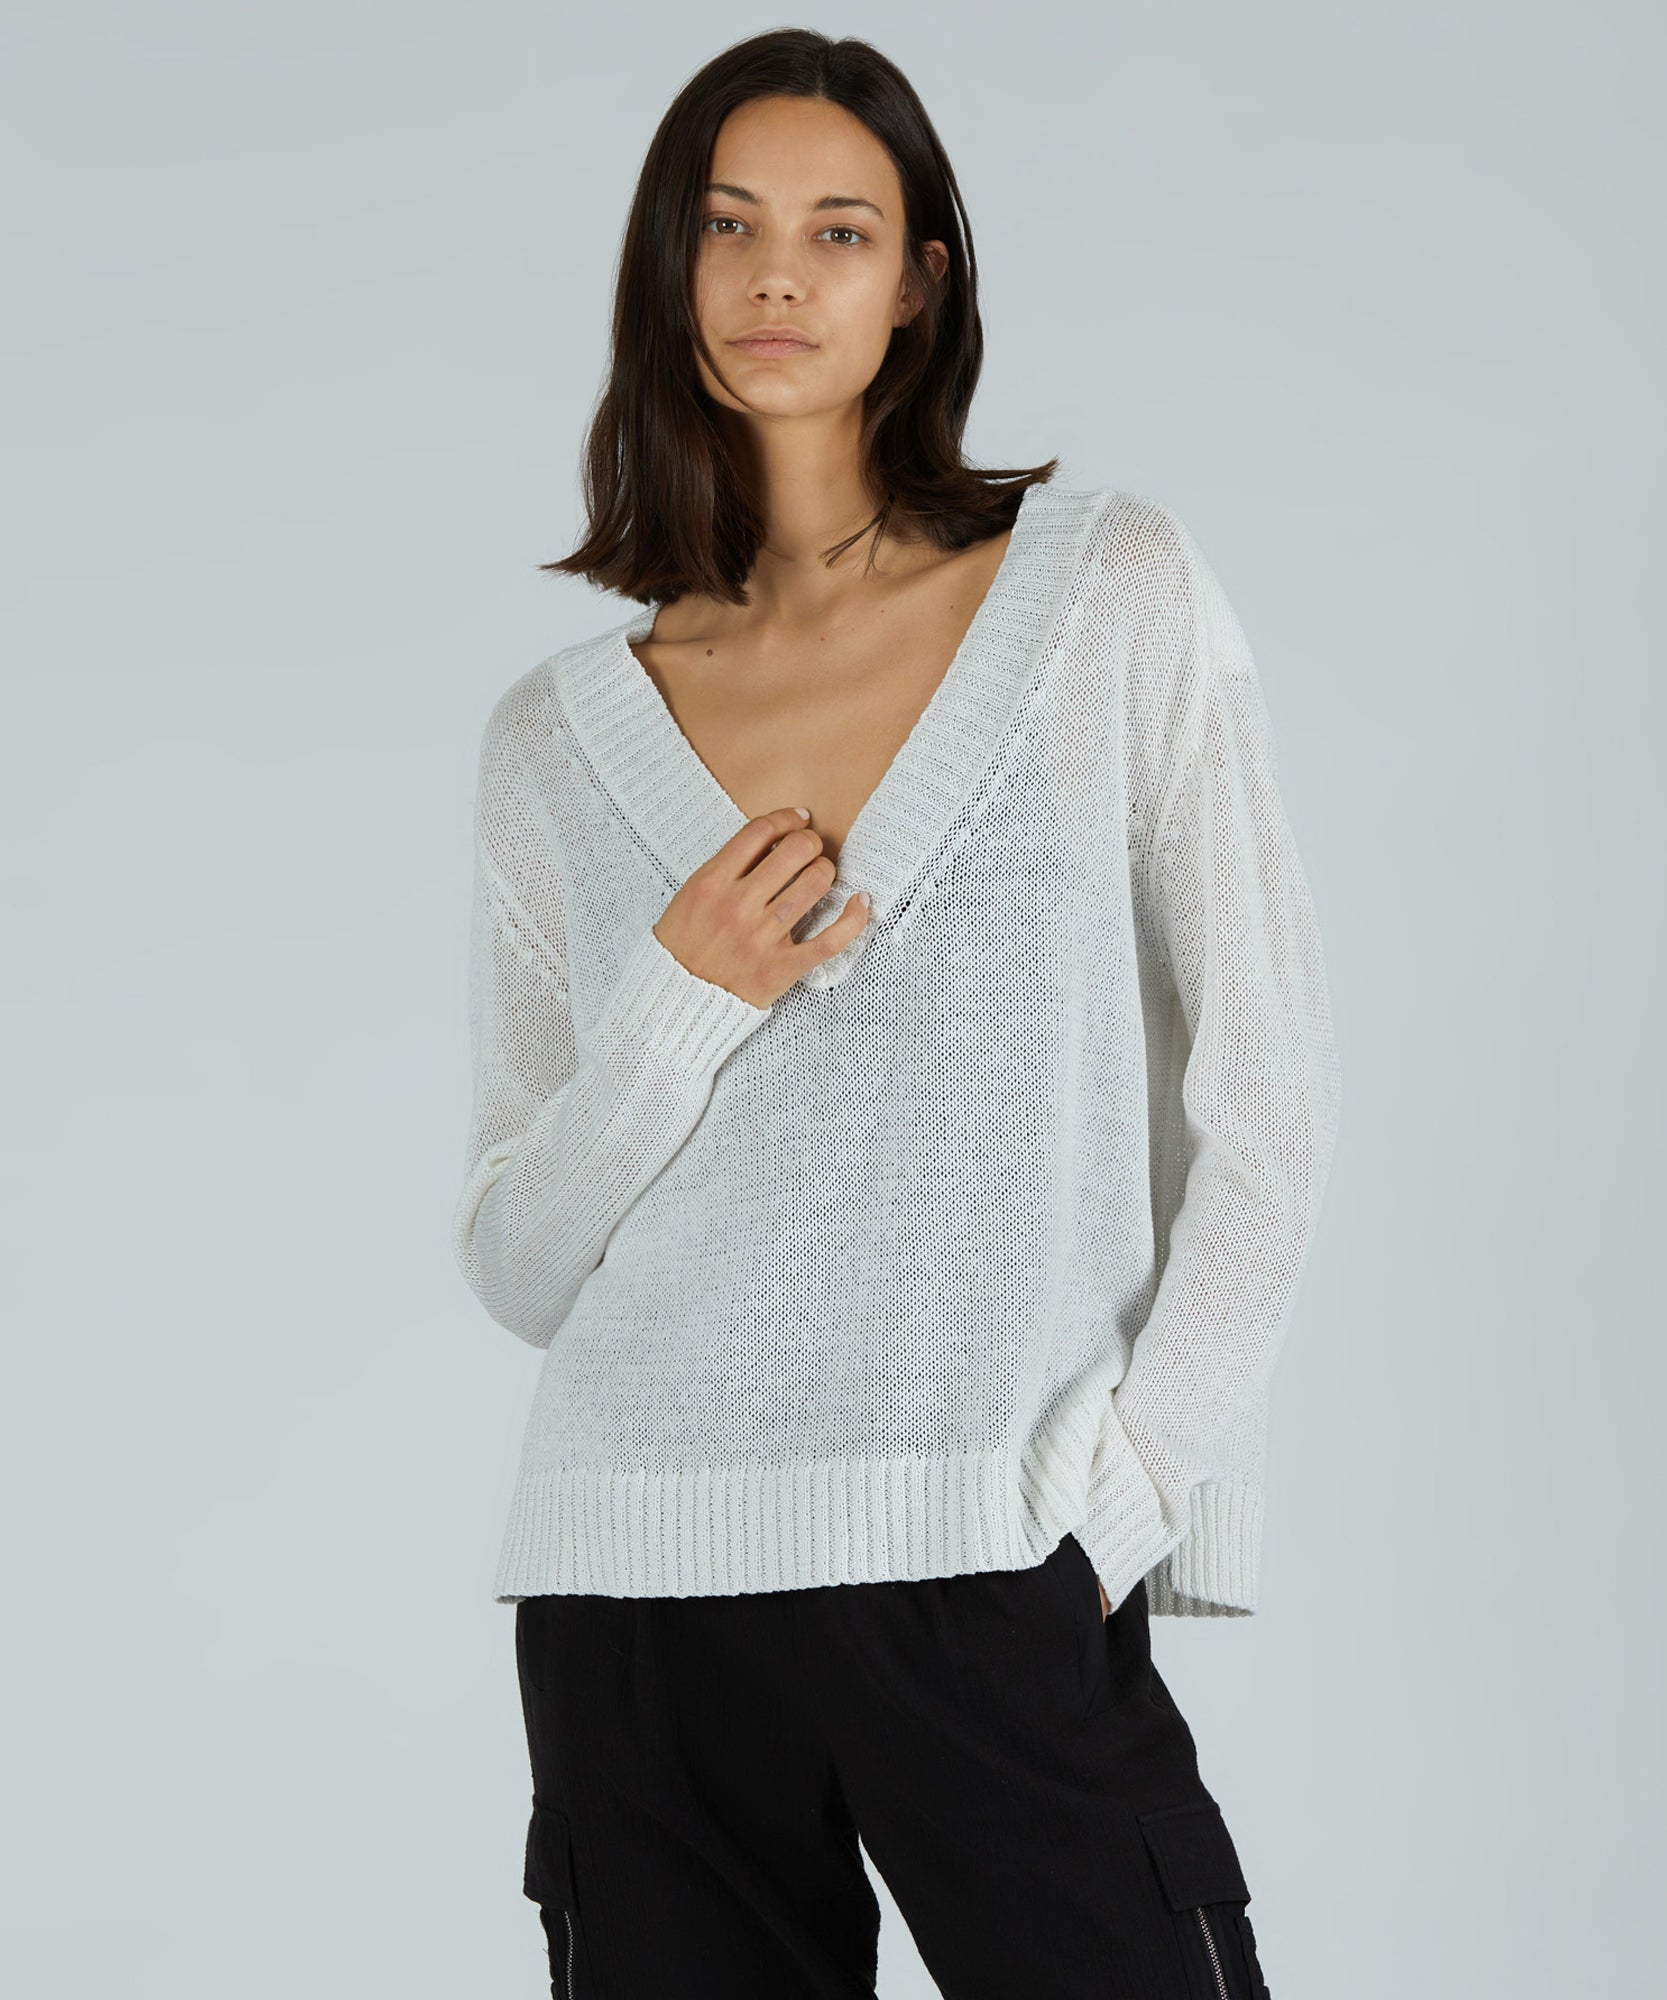 Women's Sweater by ATM Anthony Thomas Melillo